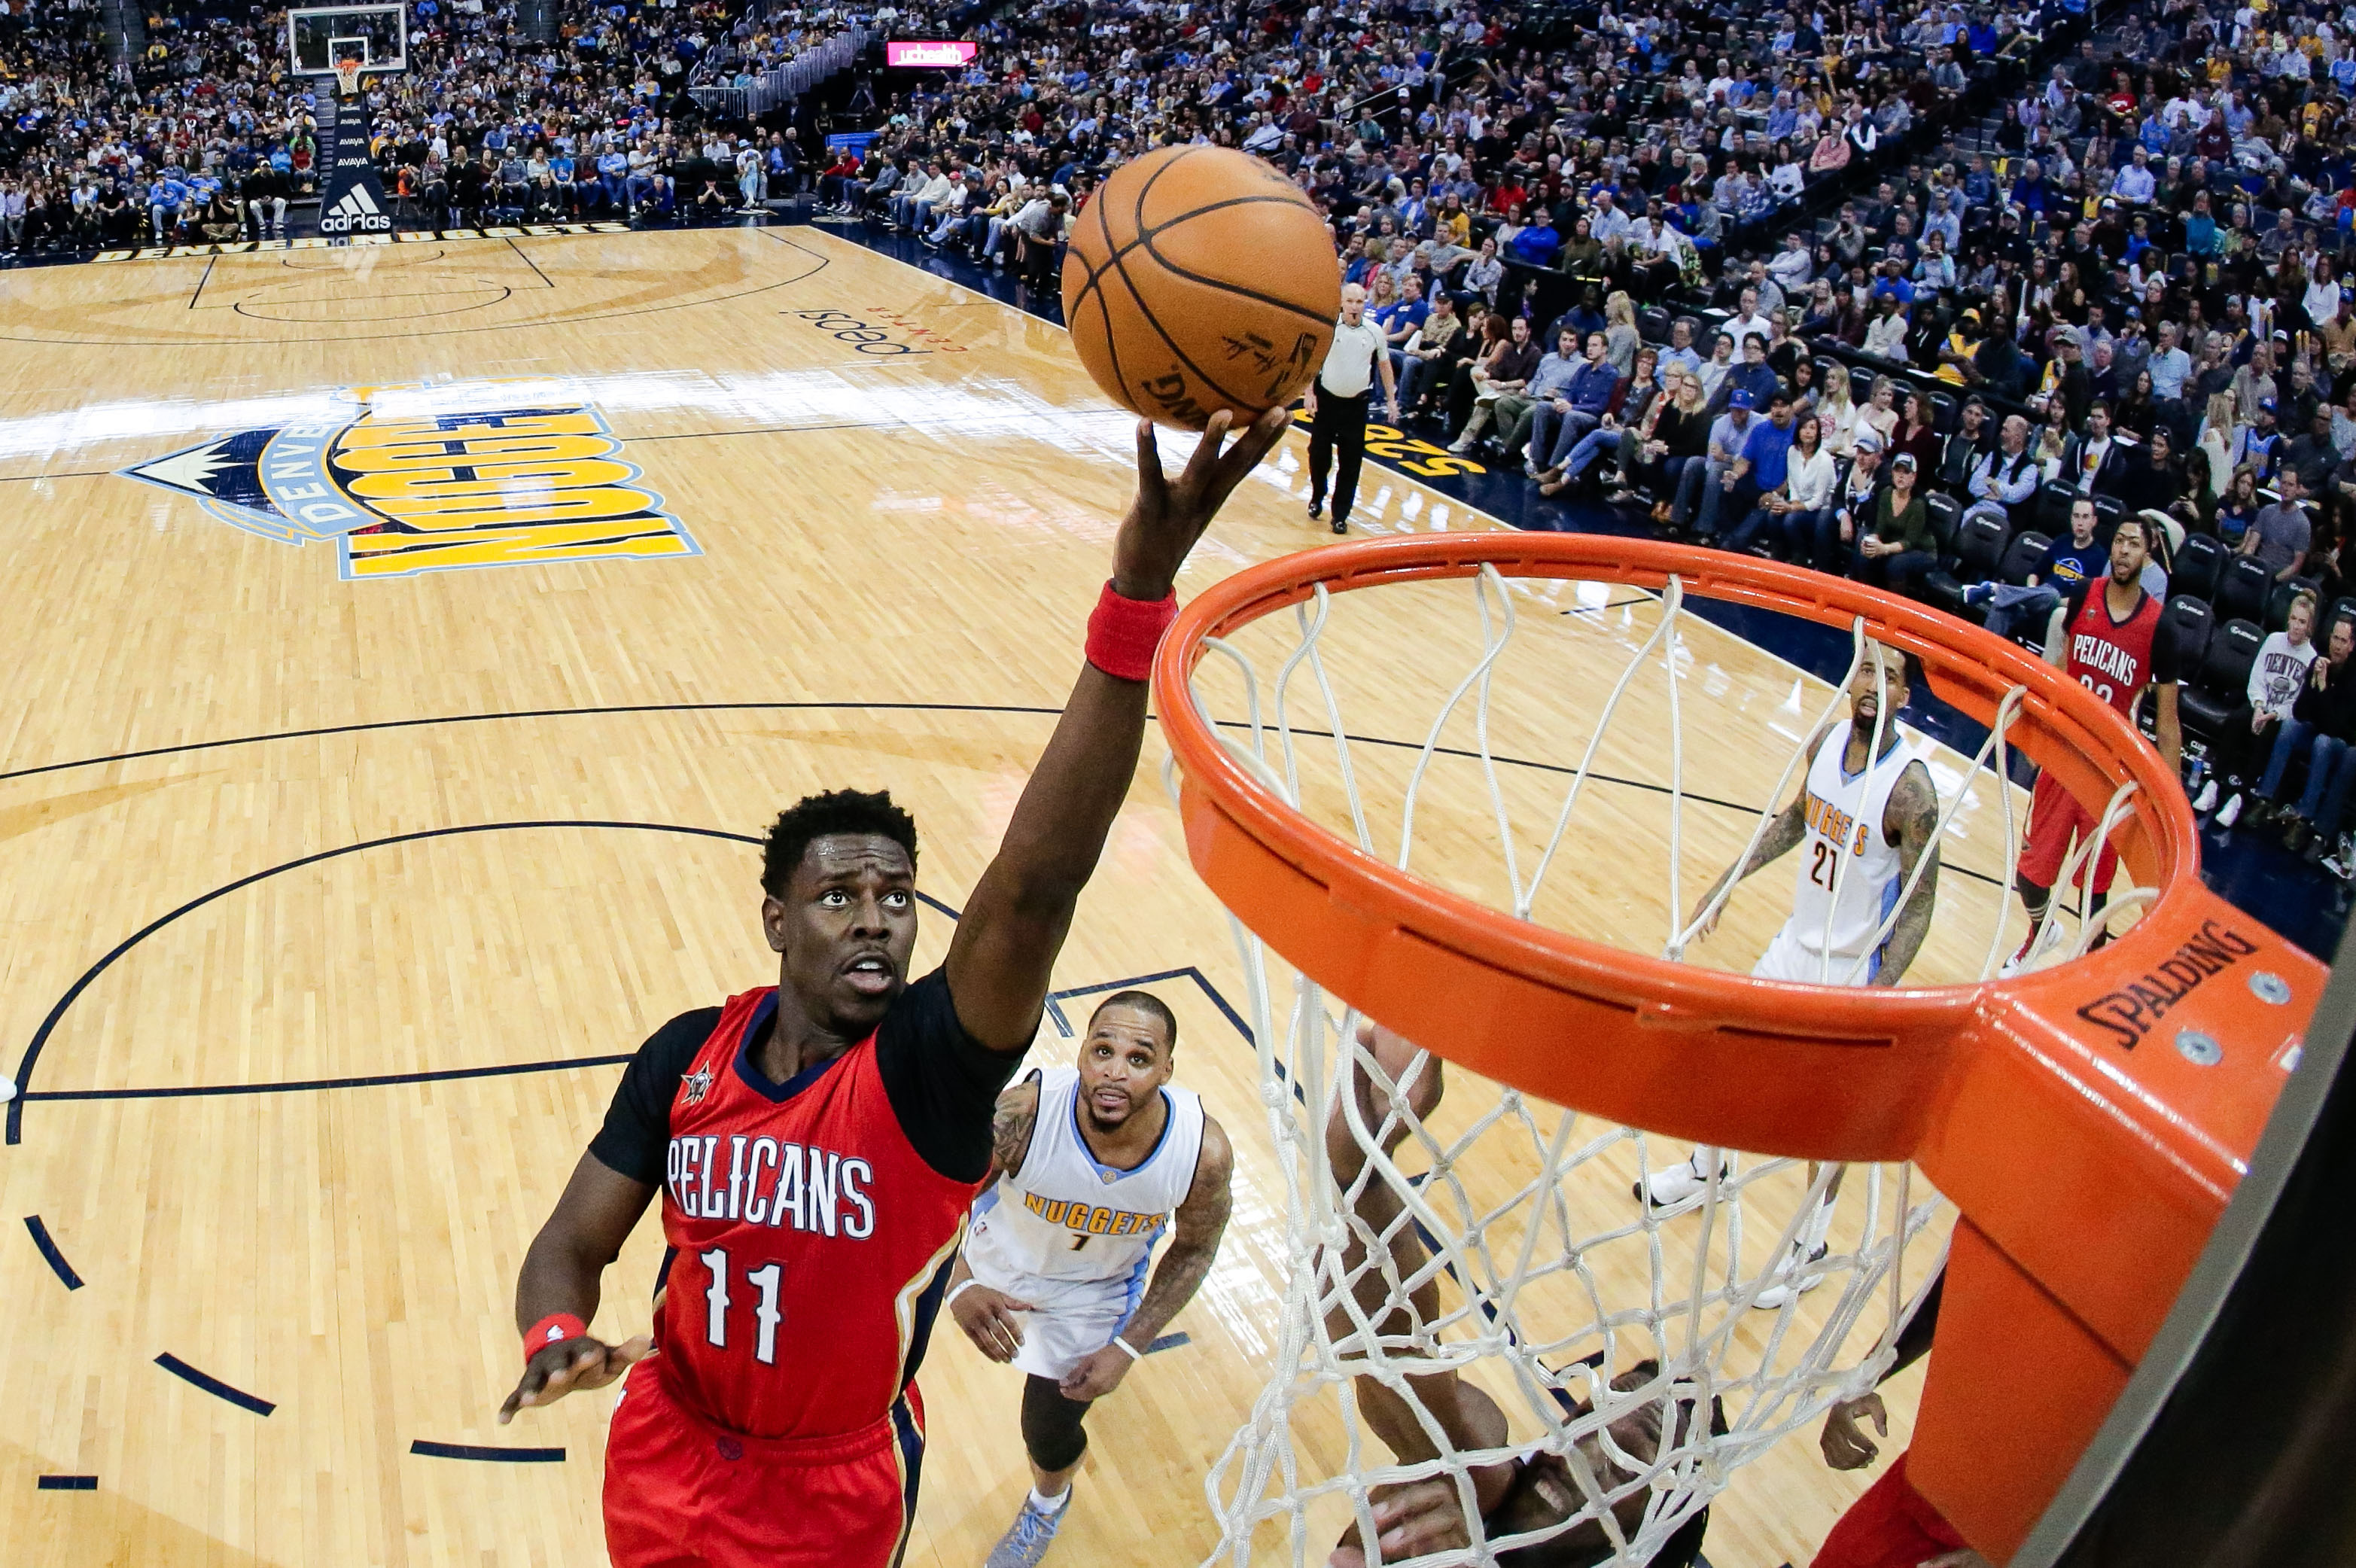 9973352-nba-new-orleans-pelicans-at-denver-nuggets